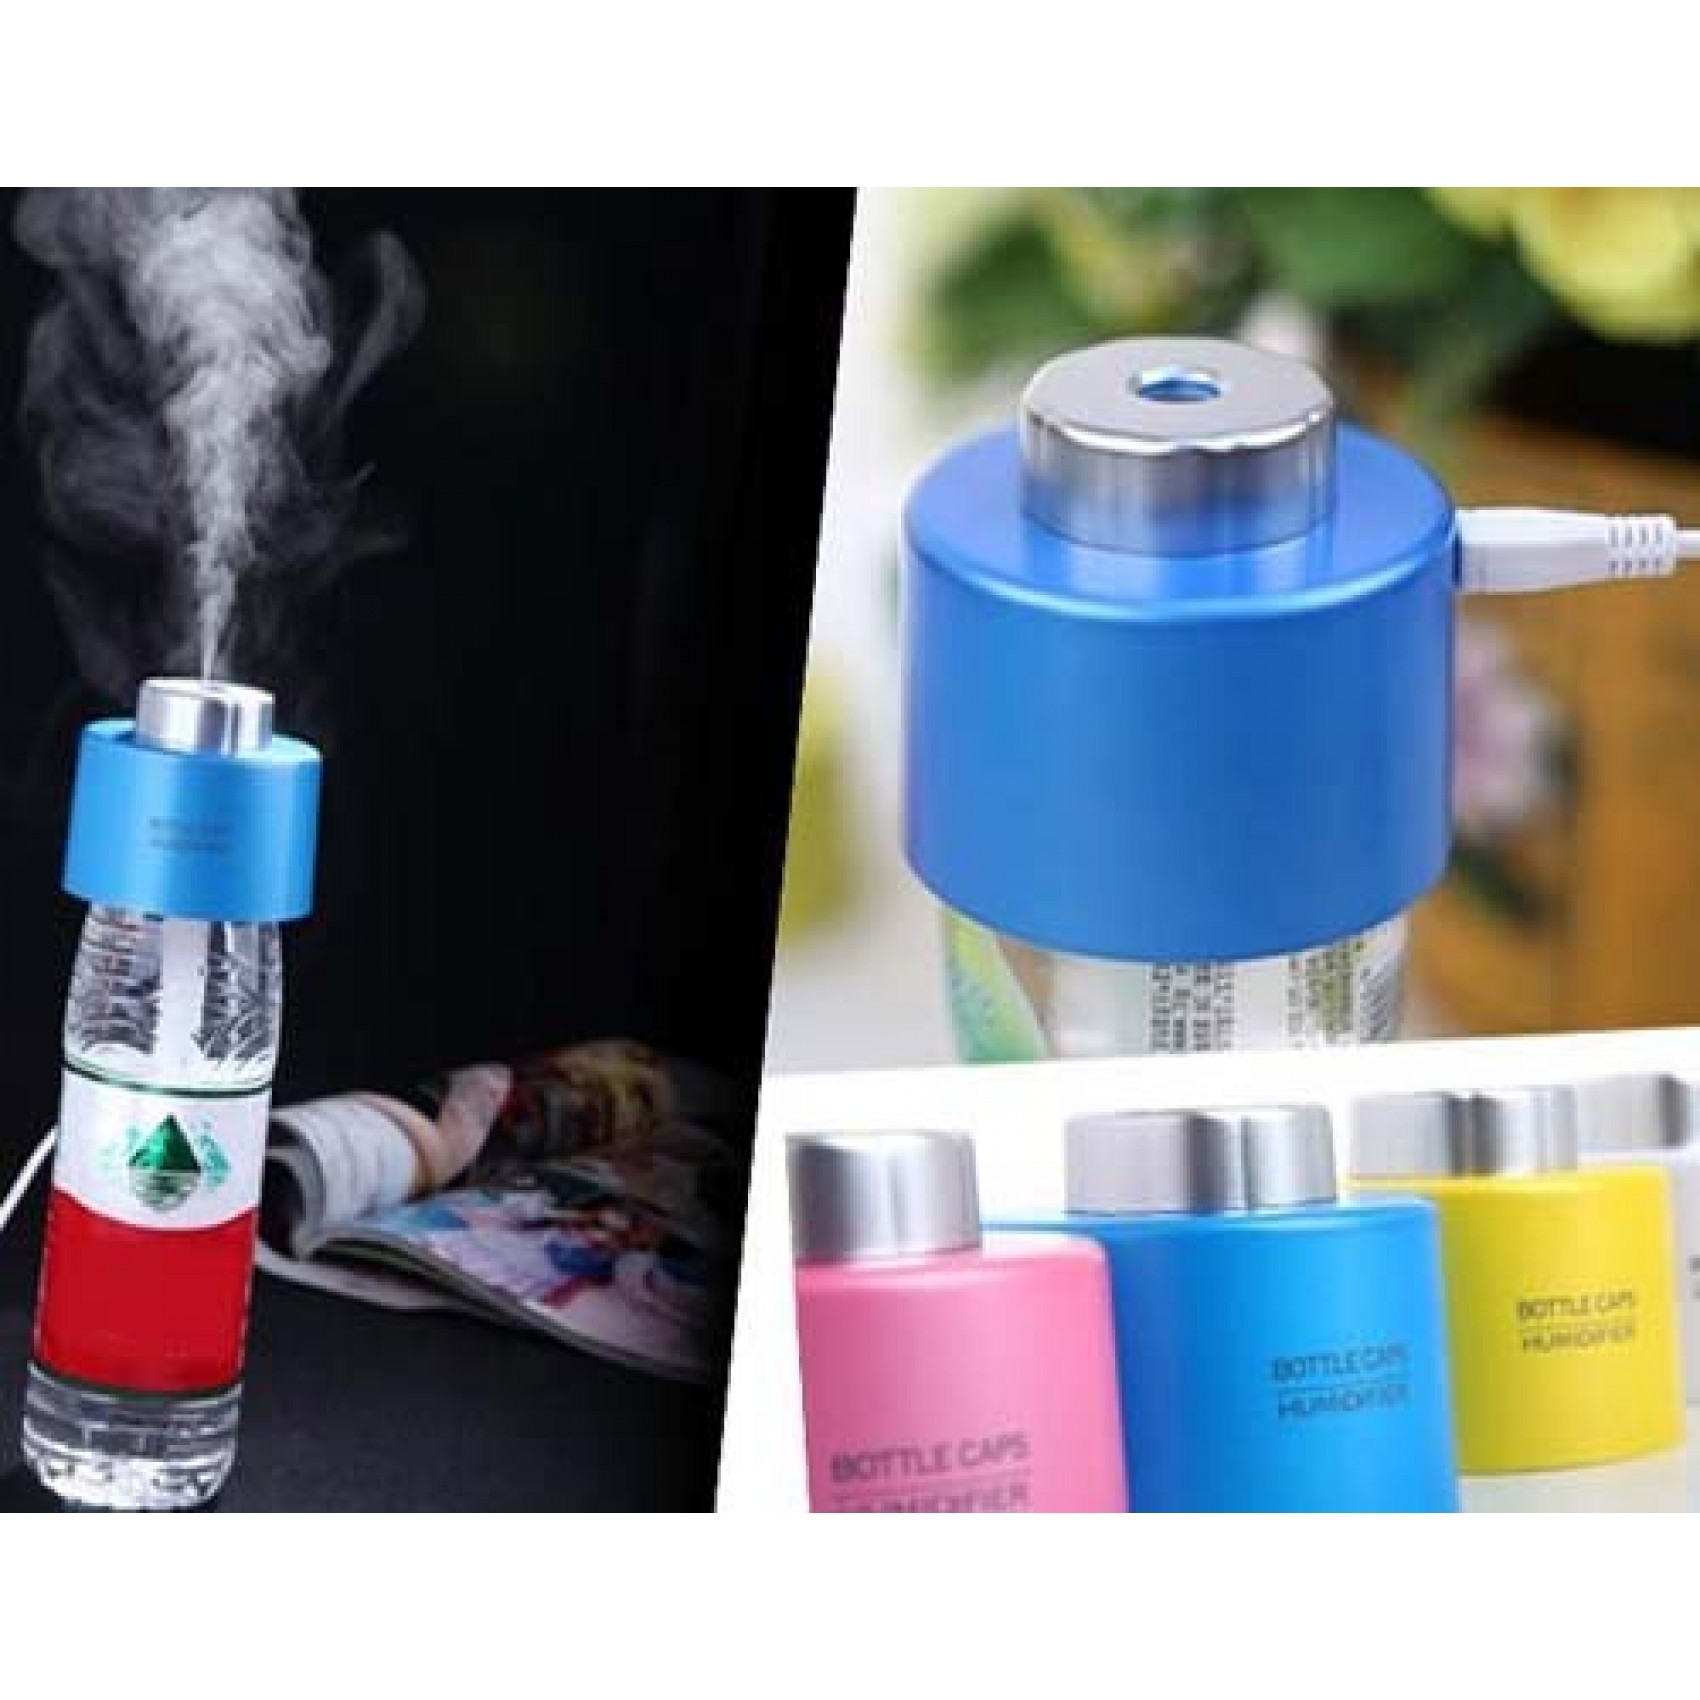 USB Bottle Cap Air Humidifier- Pink